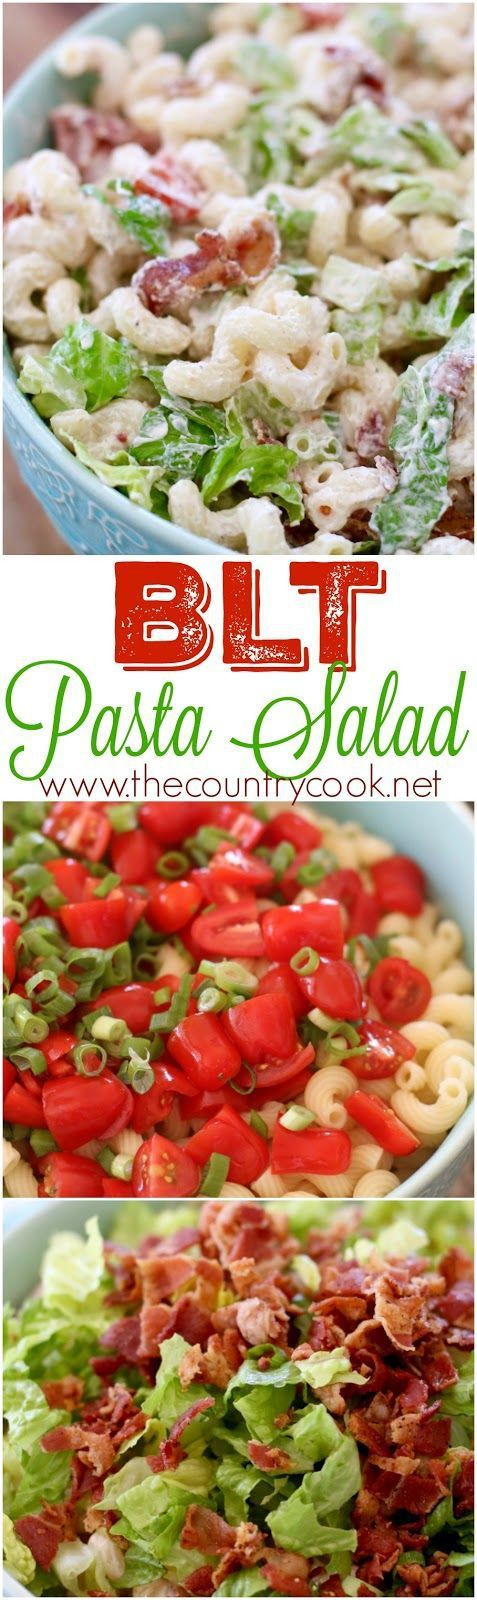 Easy Summer Dinners For A Crowd  Easy Pasta Salads Recipes – The BEST Yummy Barbecue Side